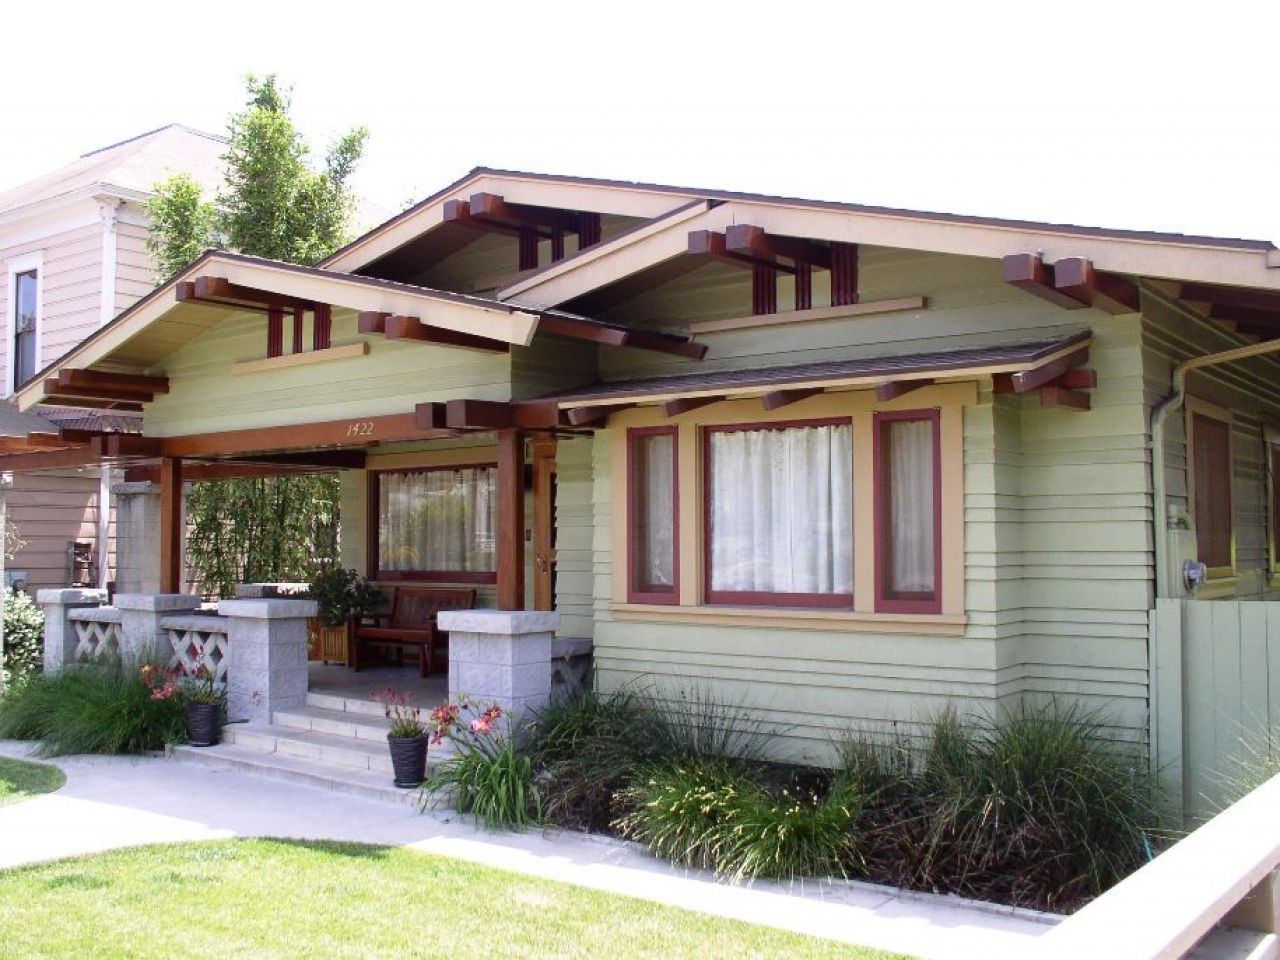 Roof Design Ideas: Craftsman Bungalow Roof Styles Kitchens Craftsman Bungalow